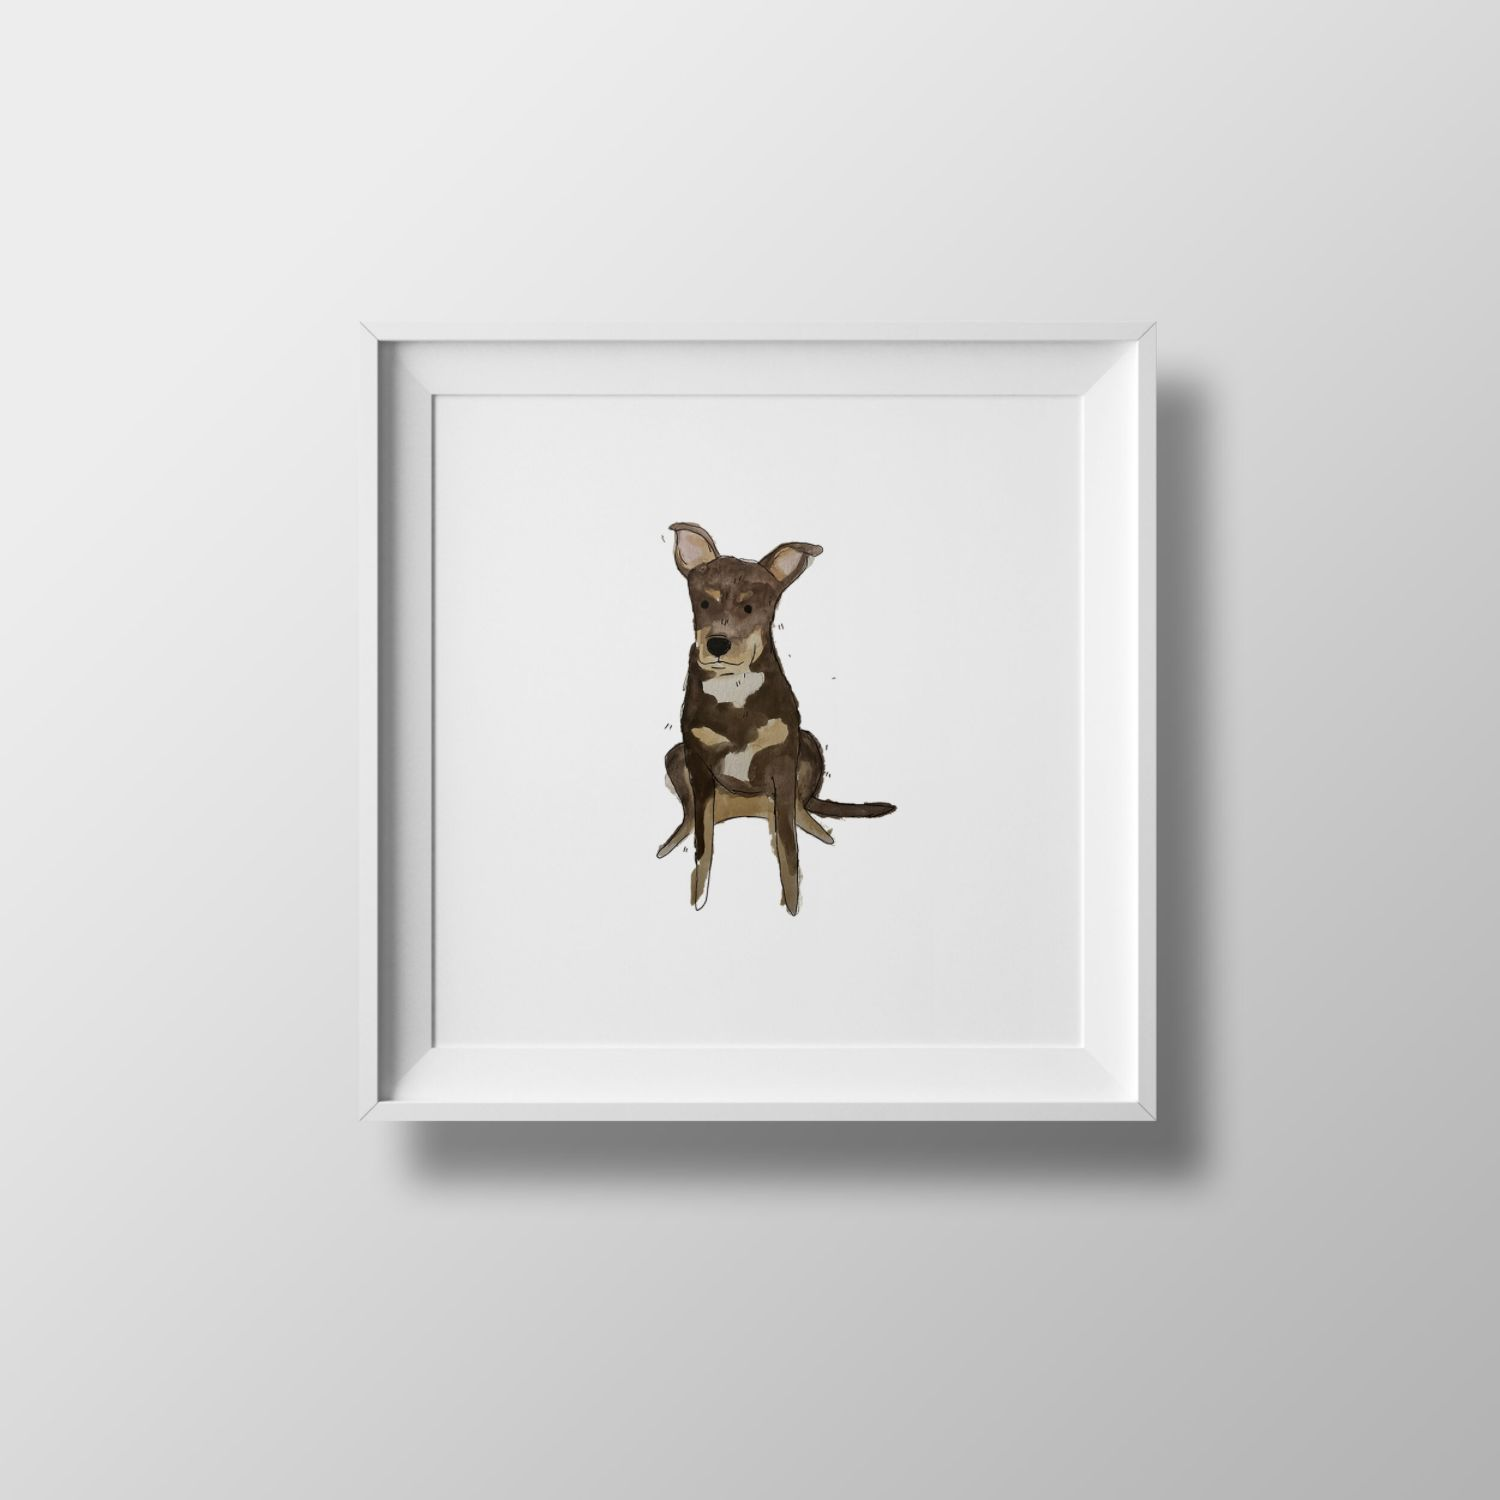 a framed portrait of a dog by andre caceres